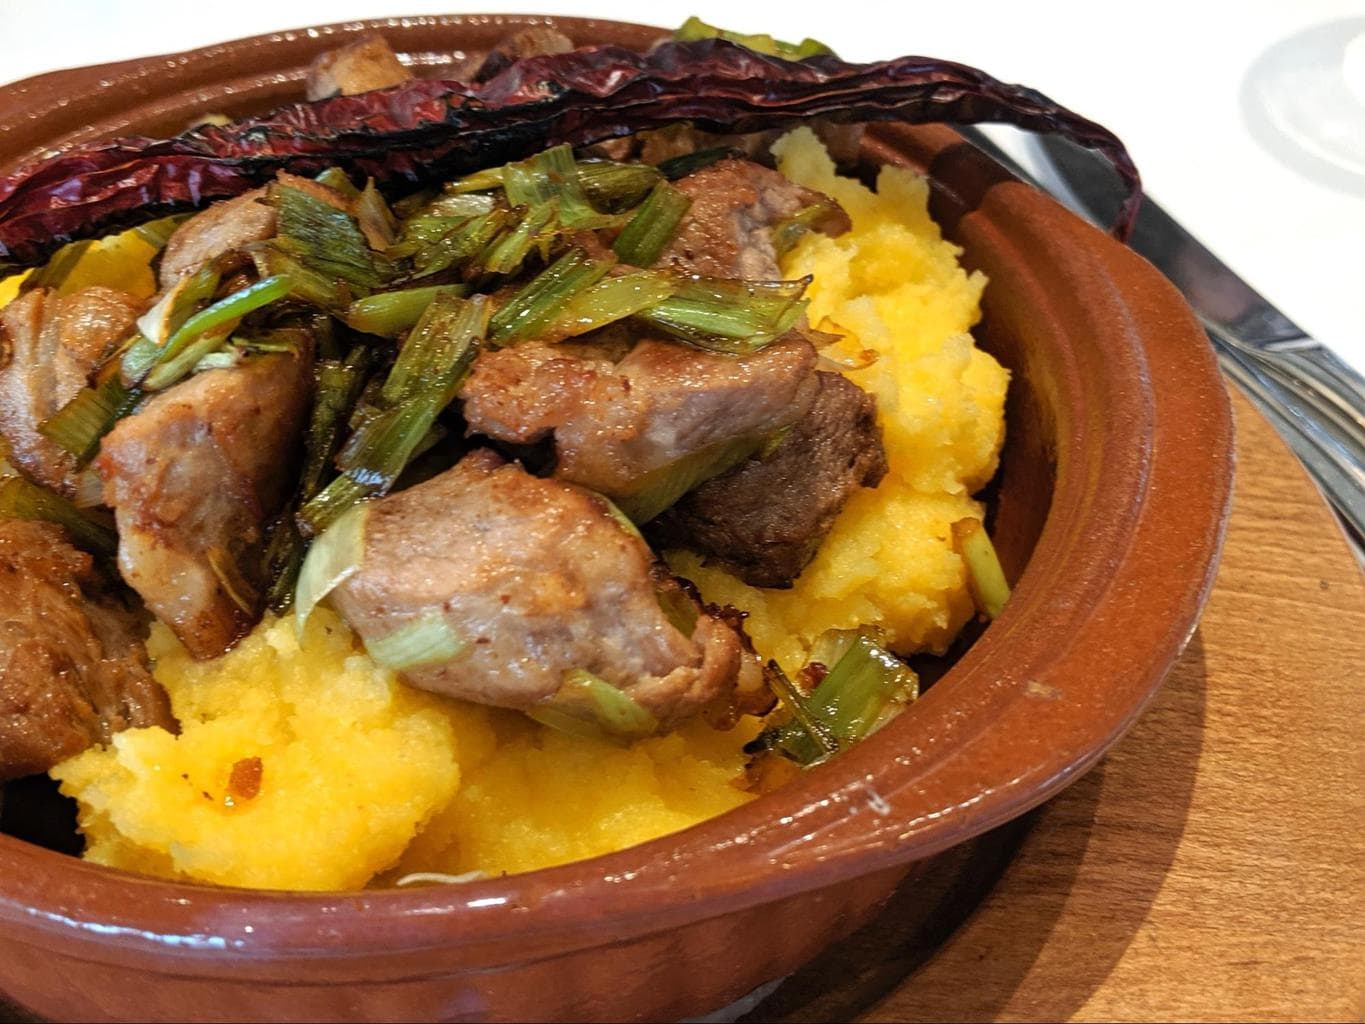 Polenta as the base for a Macedonian grilled meat dish